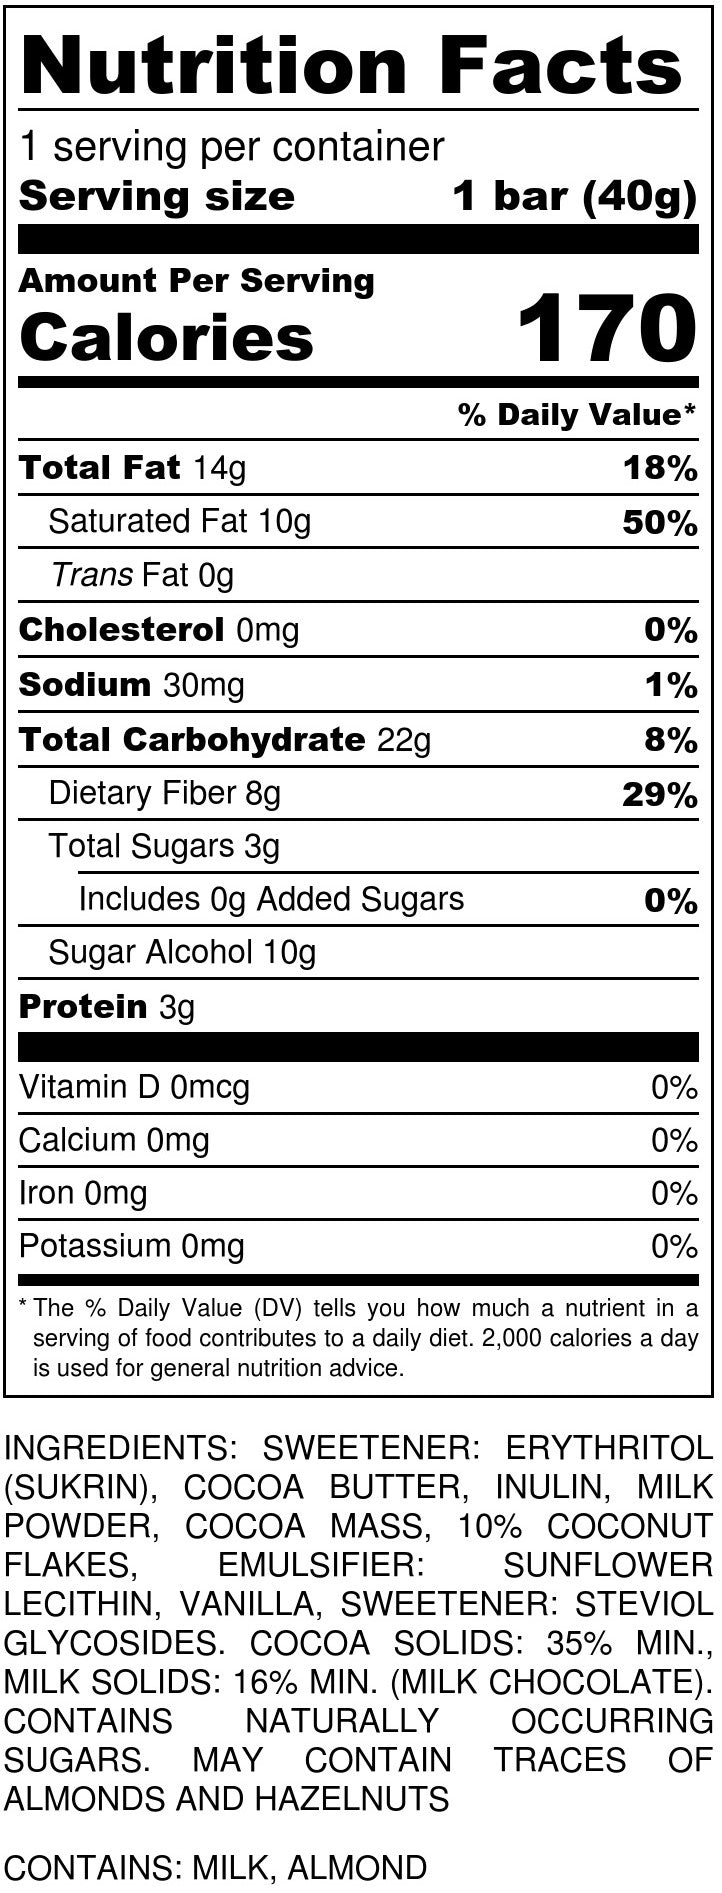 Milk Chocolate Caramel Nutrition Facts